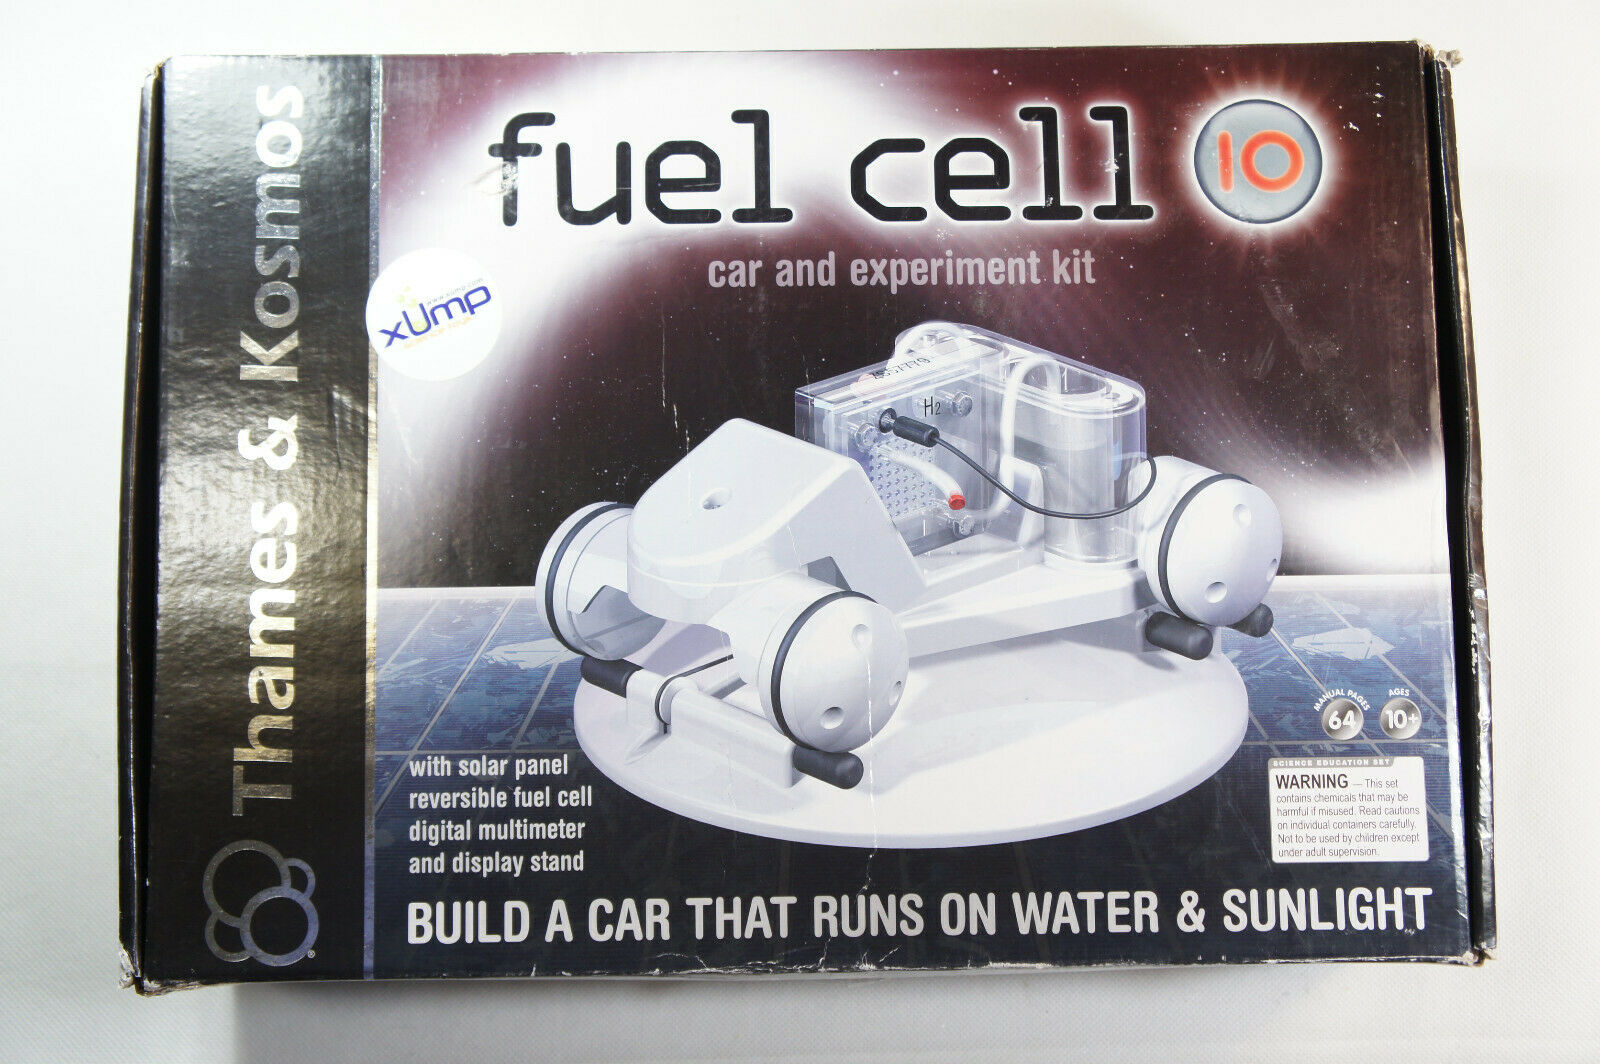 NEW SEALED 2009 Thames & Kosmos Fuel Cell 10 Car and Experiment Kit